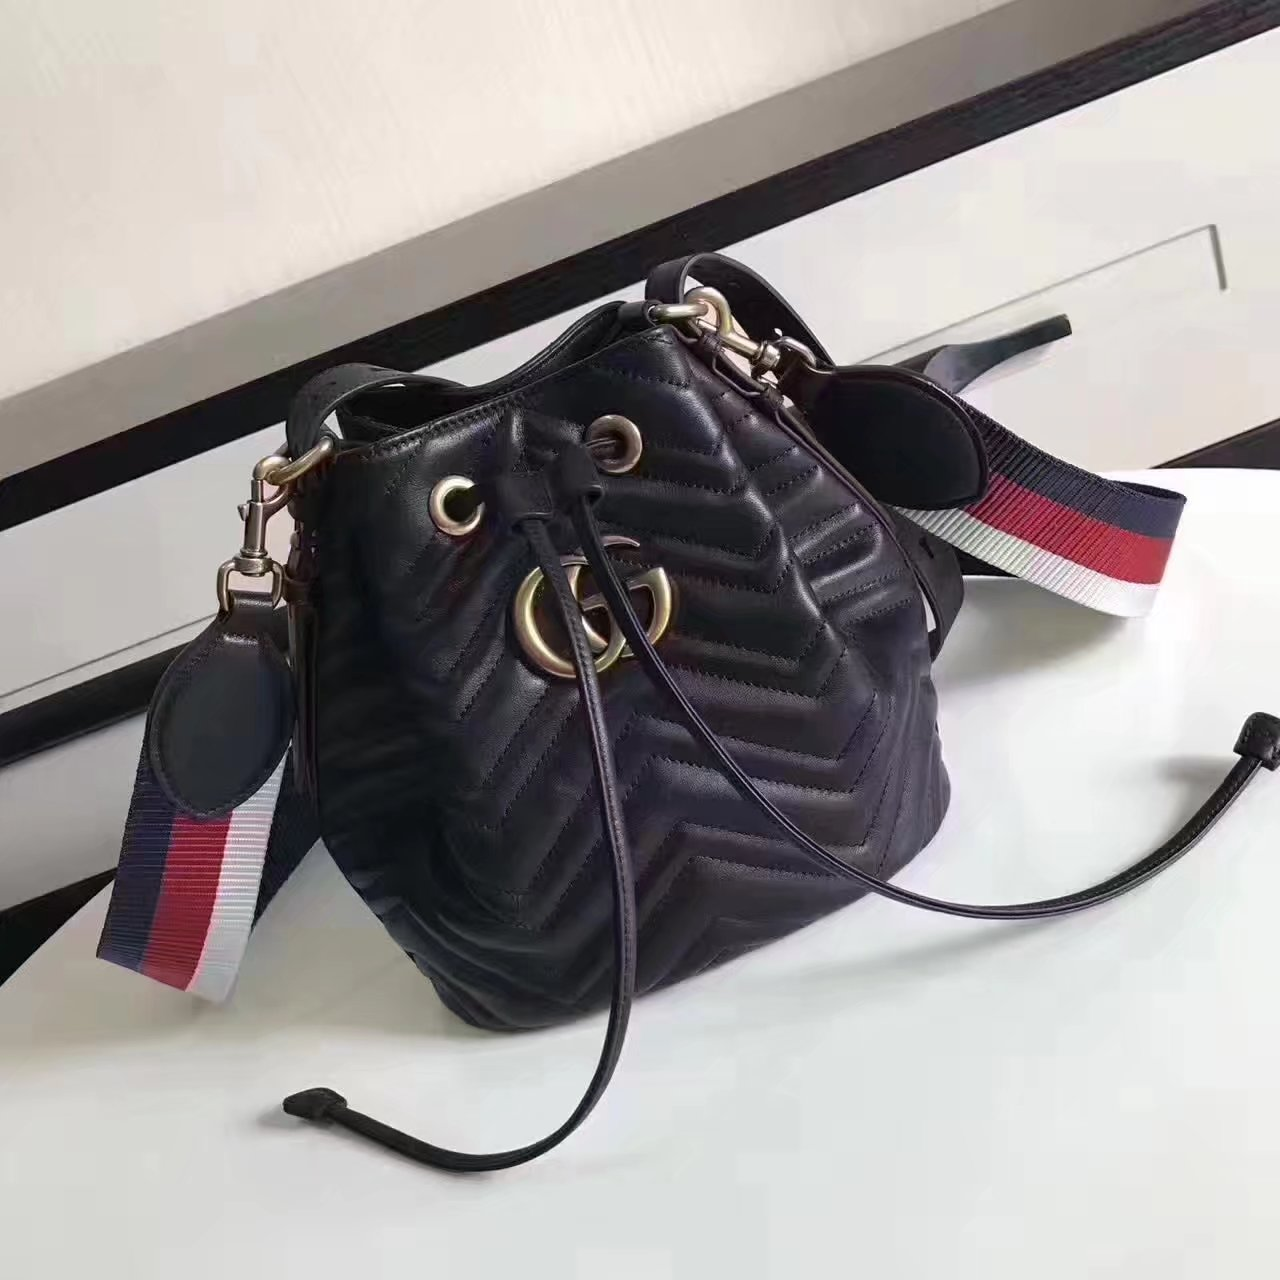 Original Gucci 476674 GG Marmont Quilted Leather Bucket Bag Black